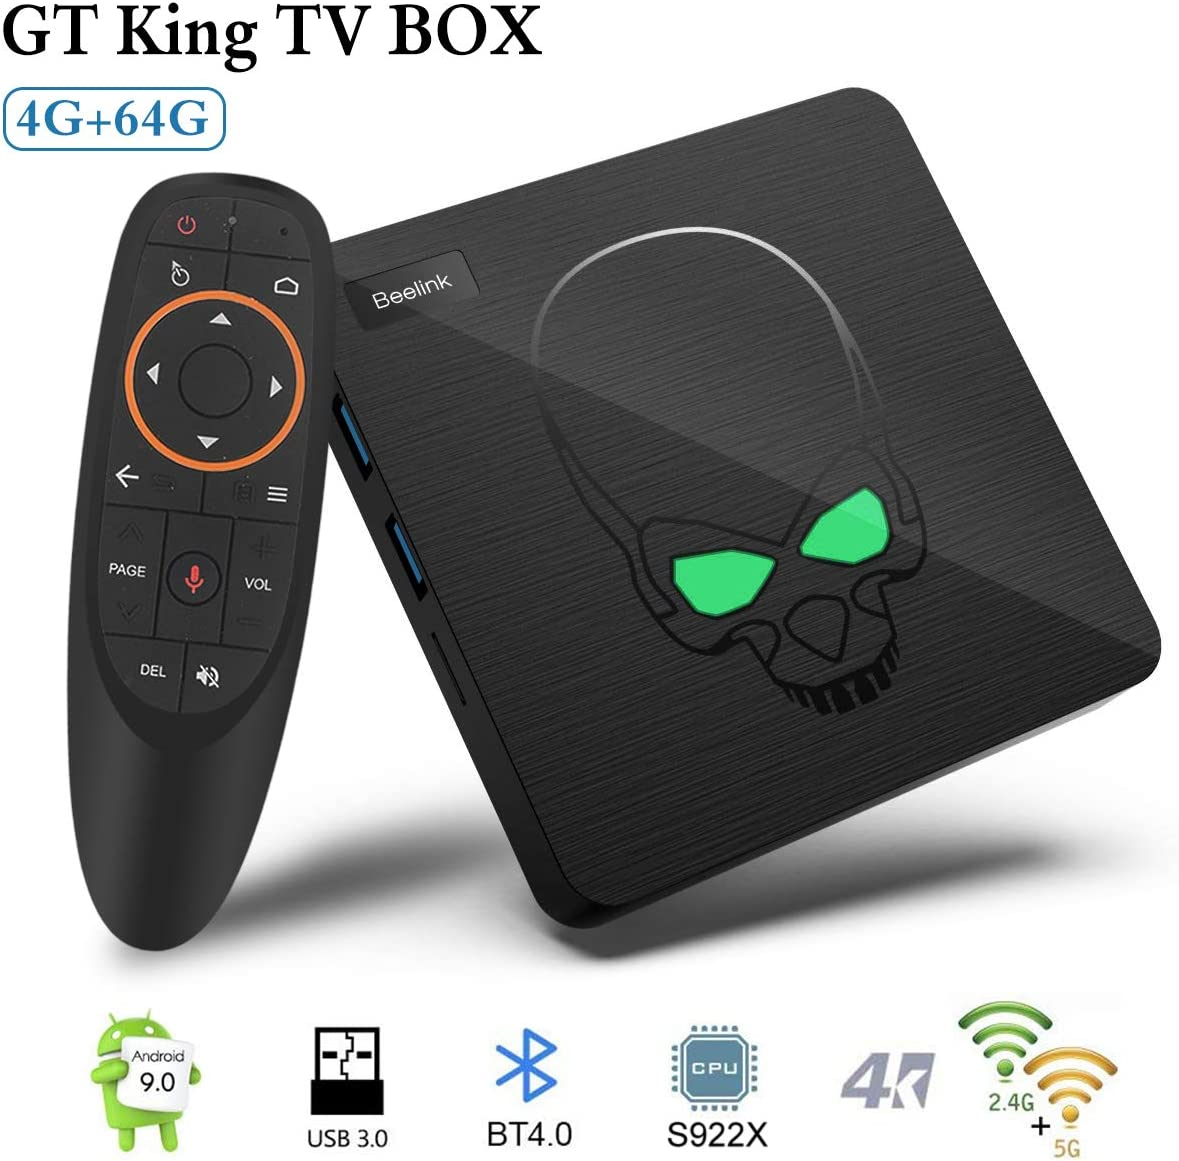 S922X TV Box, Android 9.0 TV Box, GT King tv Box Android 9.0 4gb ram 64gb, Amlogic S922X, Hexa-core, Support 2.4G 5.8G WiFi BT 4.1 4K 60fps 2.4G Voice Remote Control